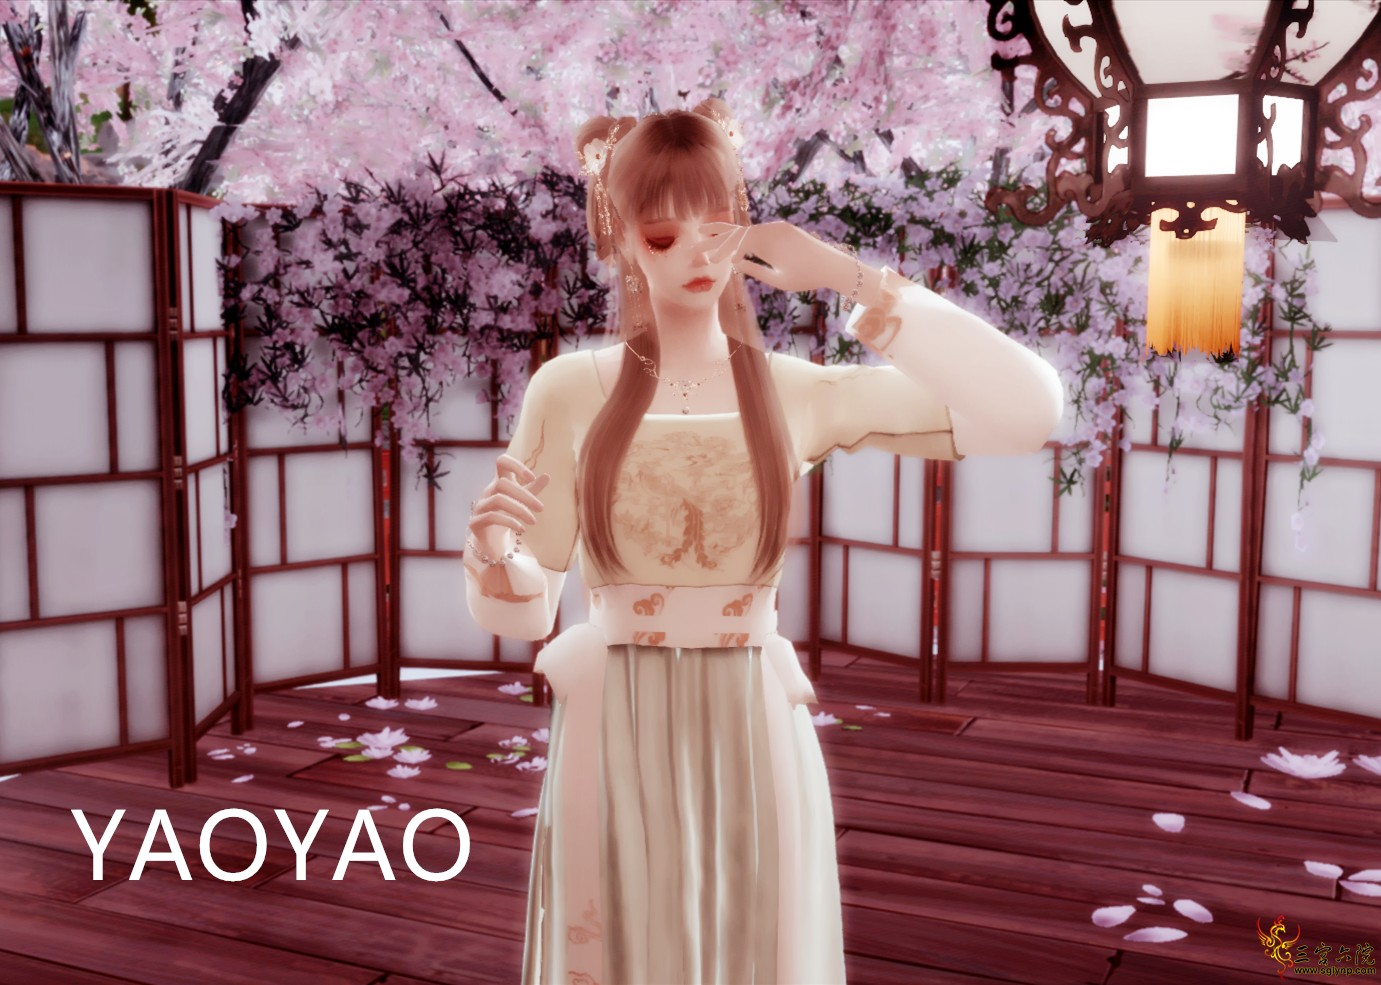 TS4_x64 2020-07-13 15-49-36_副本.png